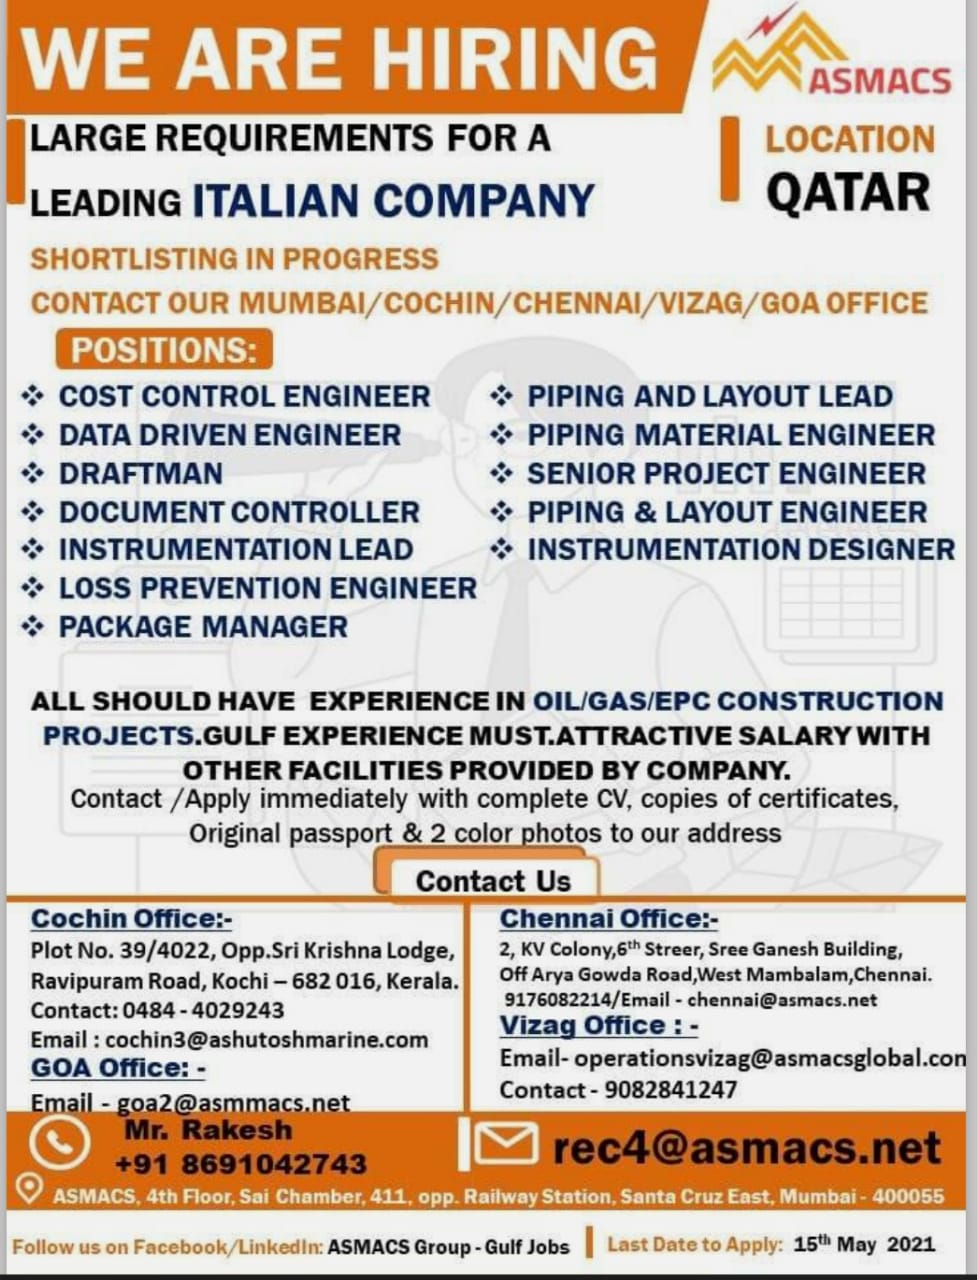 REQUIREMENTS FOR A LEADING ITALIAN COMPANY-QATAR